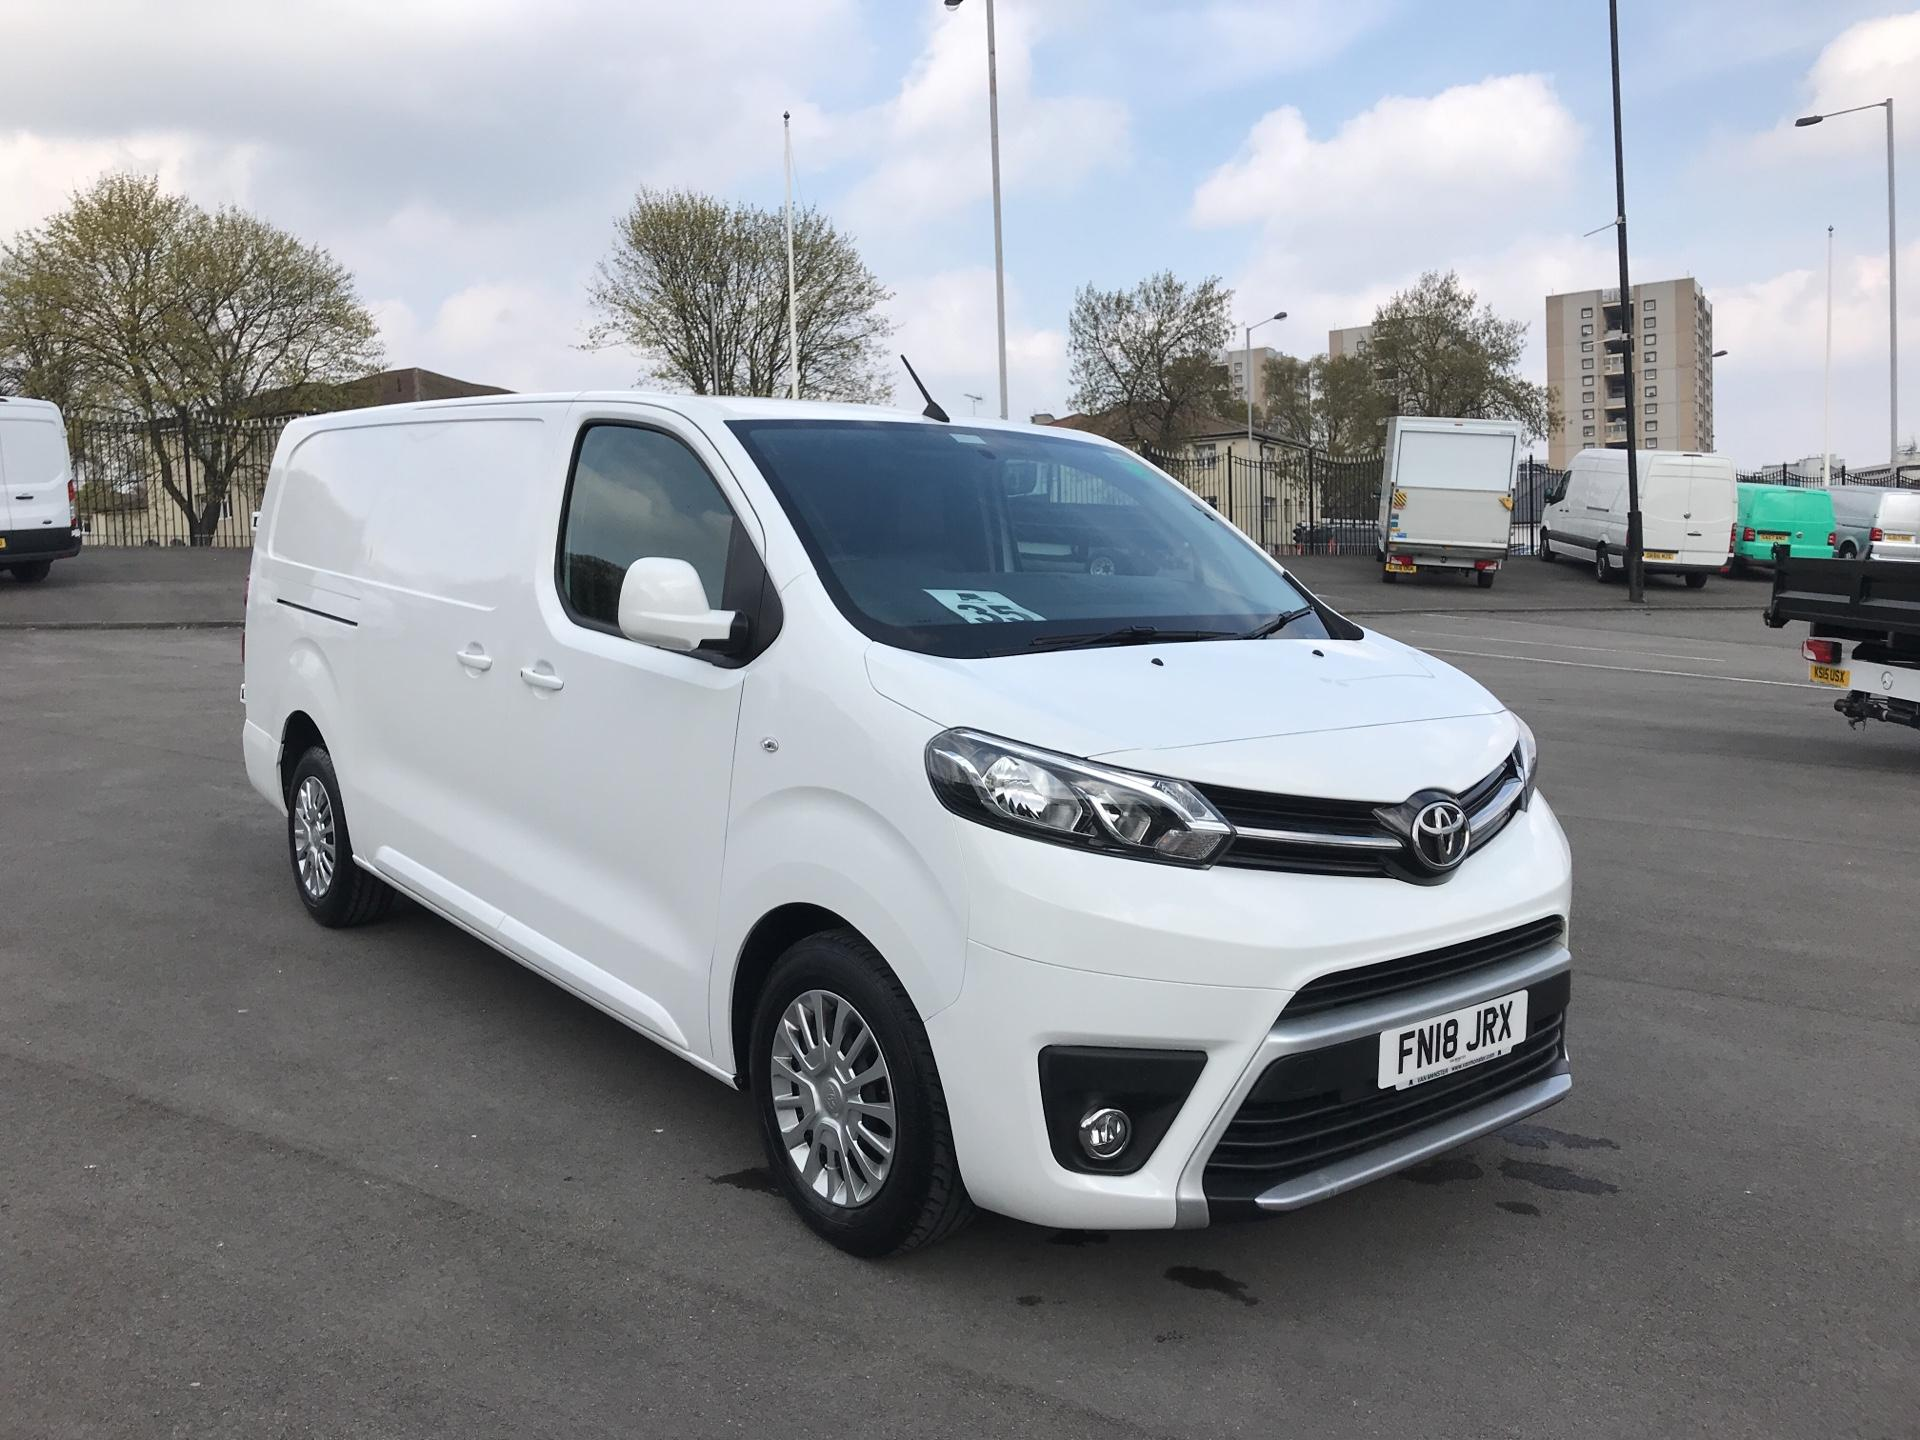 2018 Toyota Proace 2.0D LWB COMFORT 120PS AIR CON (FN18JRX)